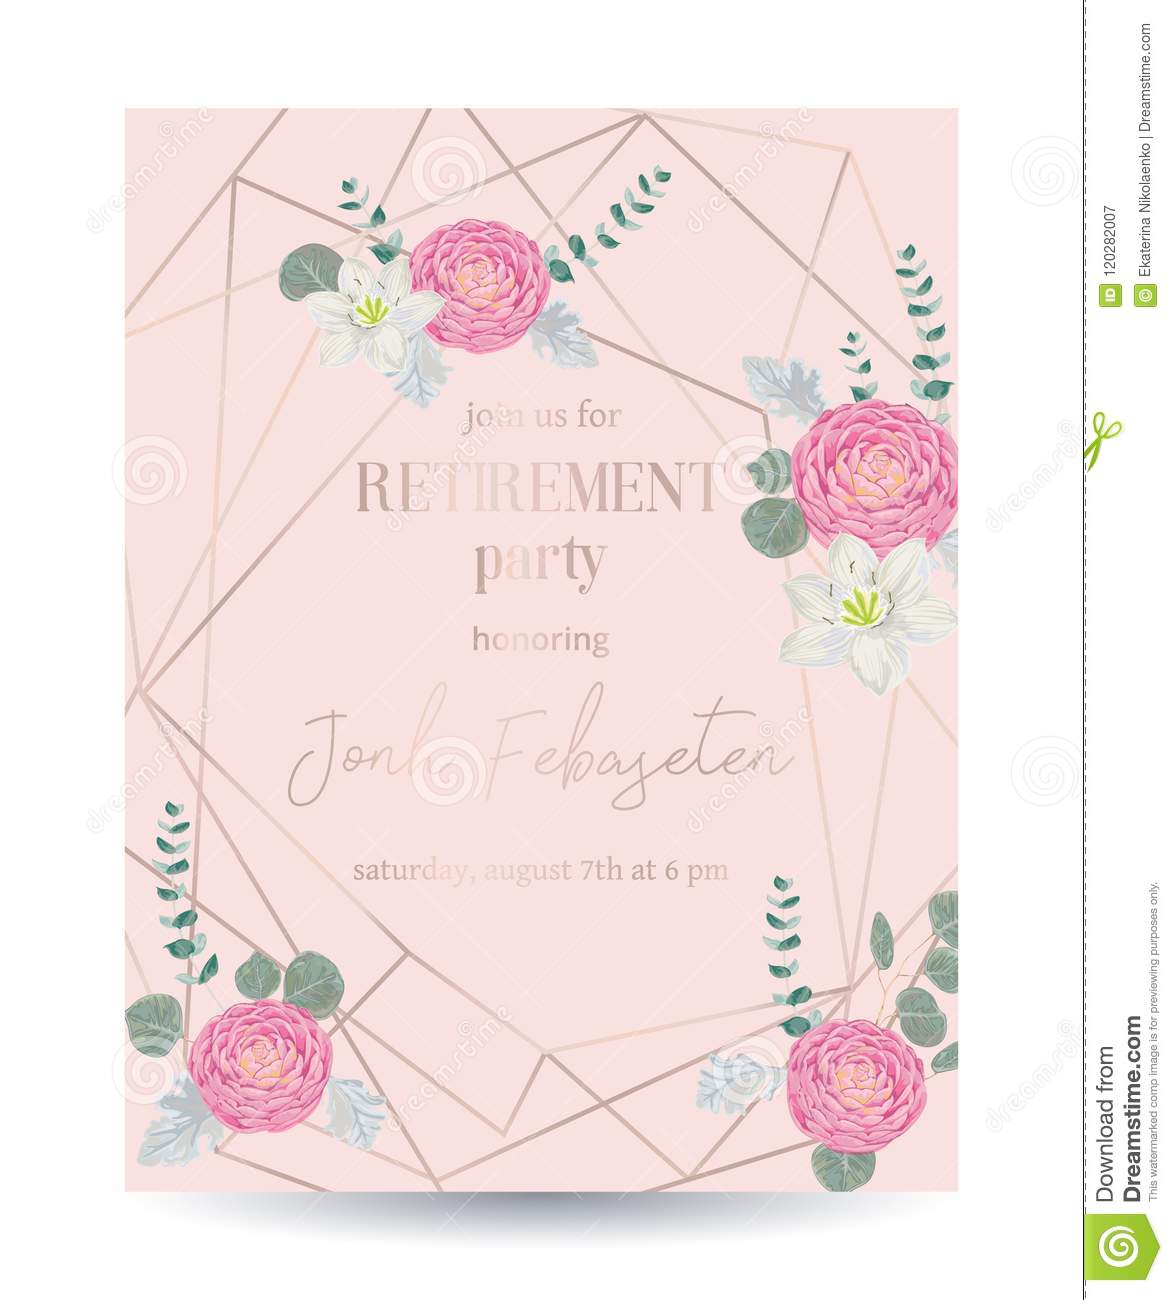 retirement party invitation design template with rose gold